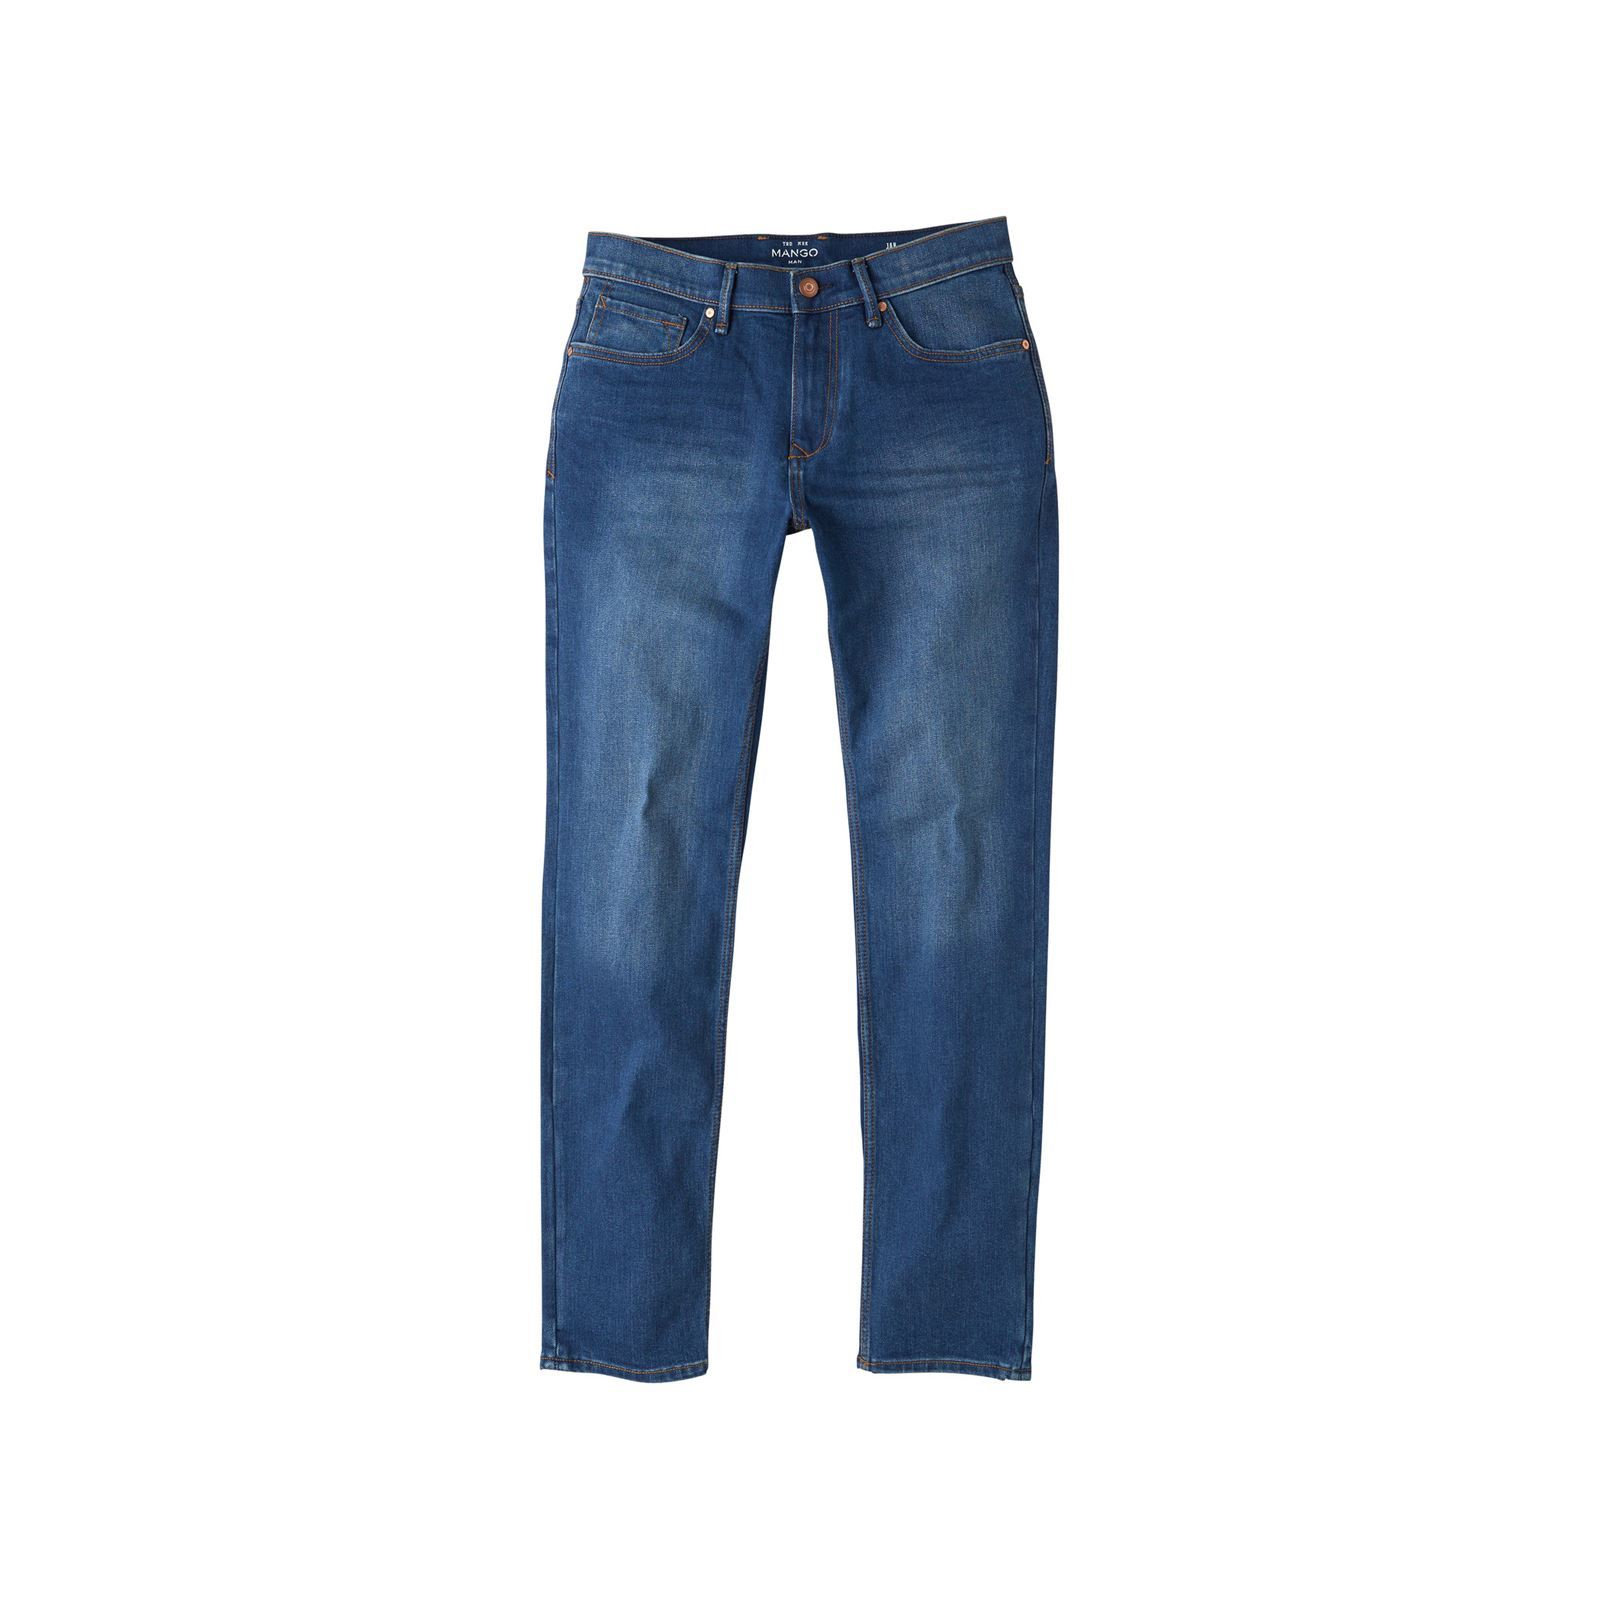 Mango Man Jean slim-fit délavé - denim bleu